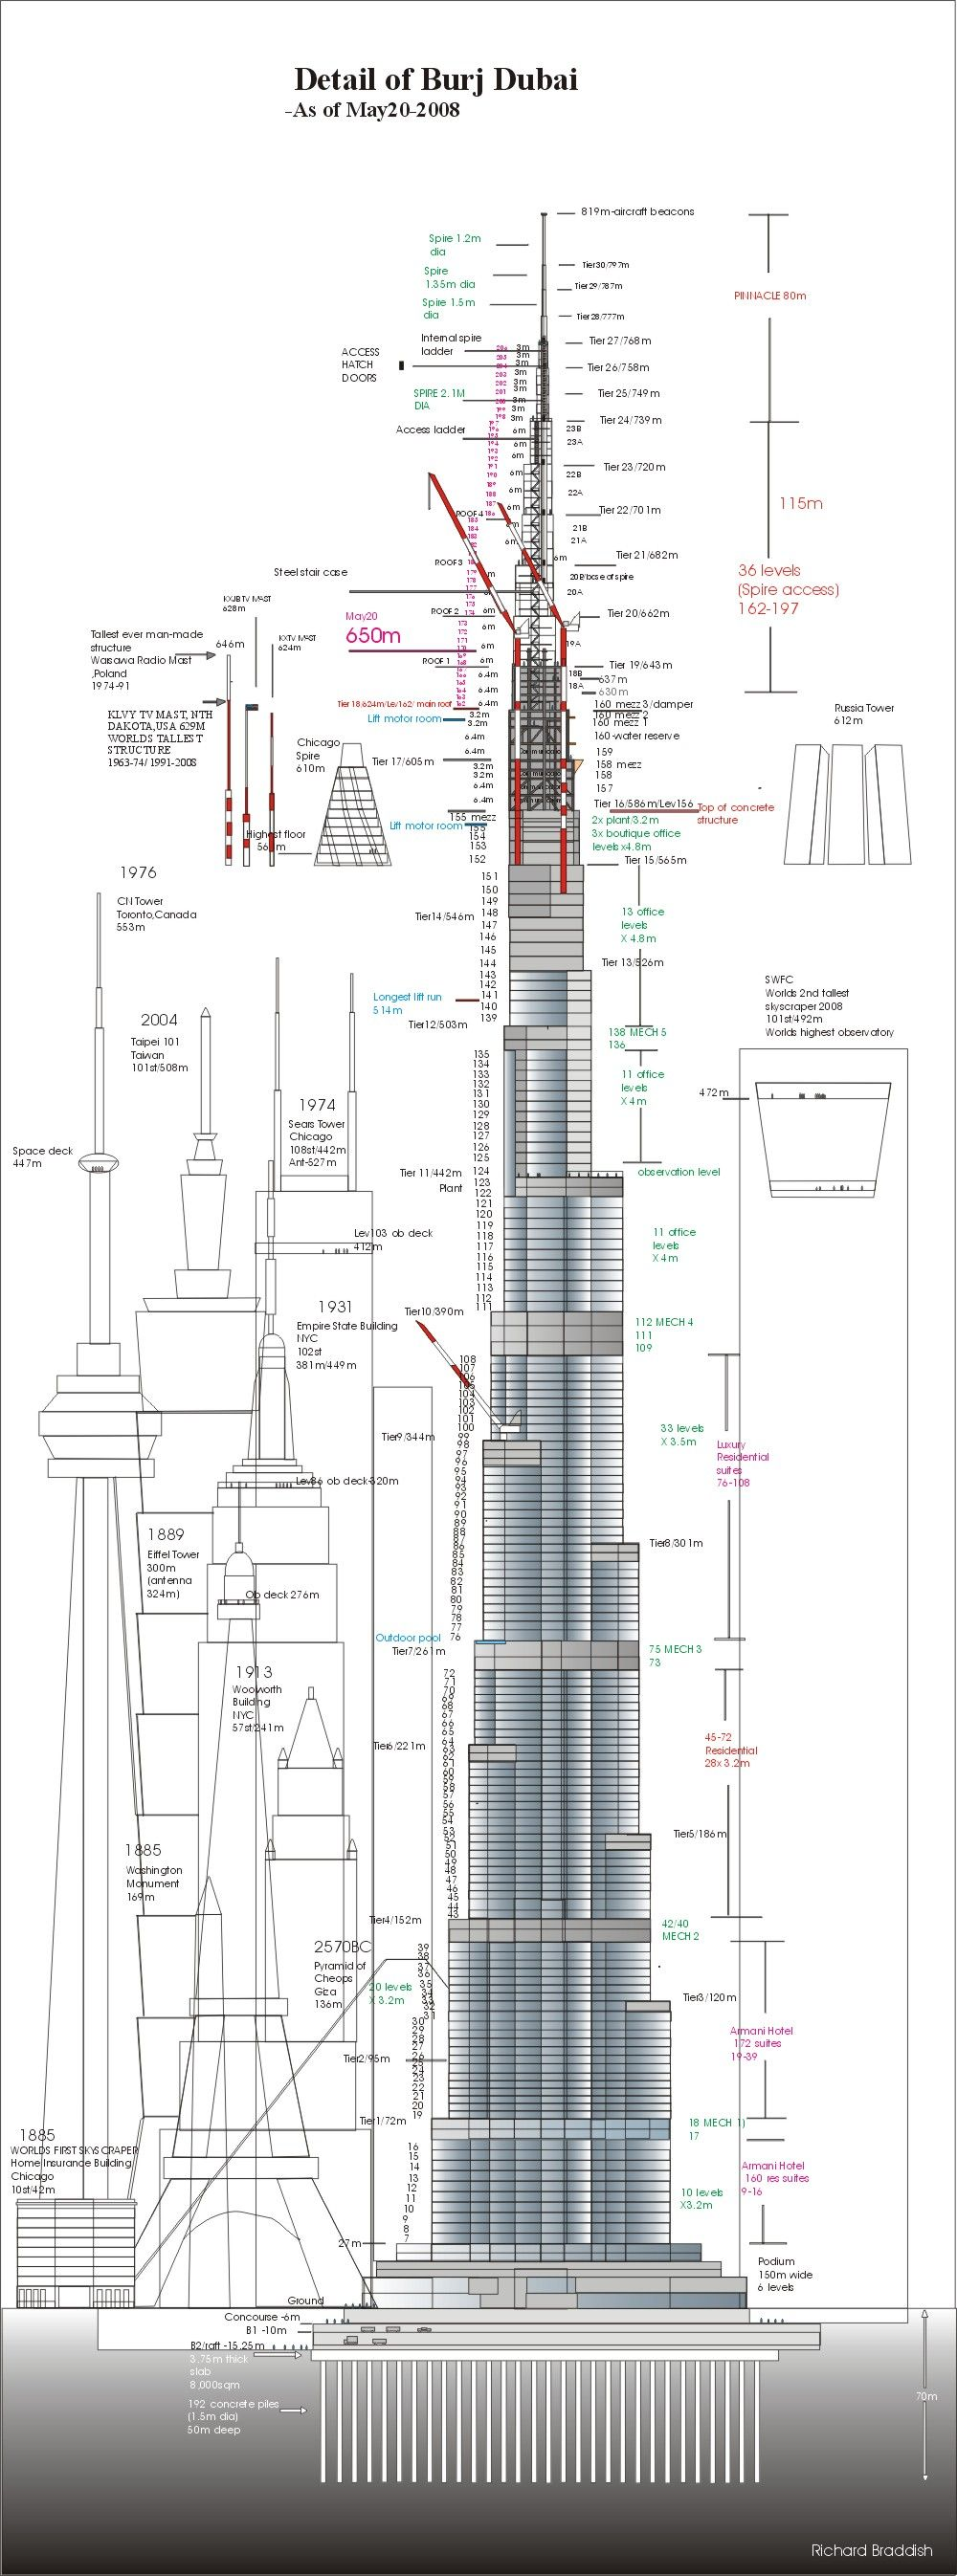 Looks like photo shop for the building clipart and the burj dubai looks like photo shop for the building clipart and the burj dubai building was made in illustrator organized in indesign ccuart Images